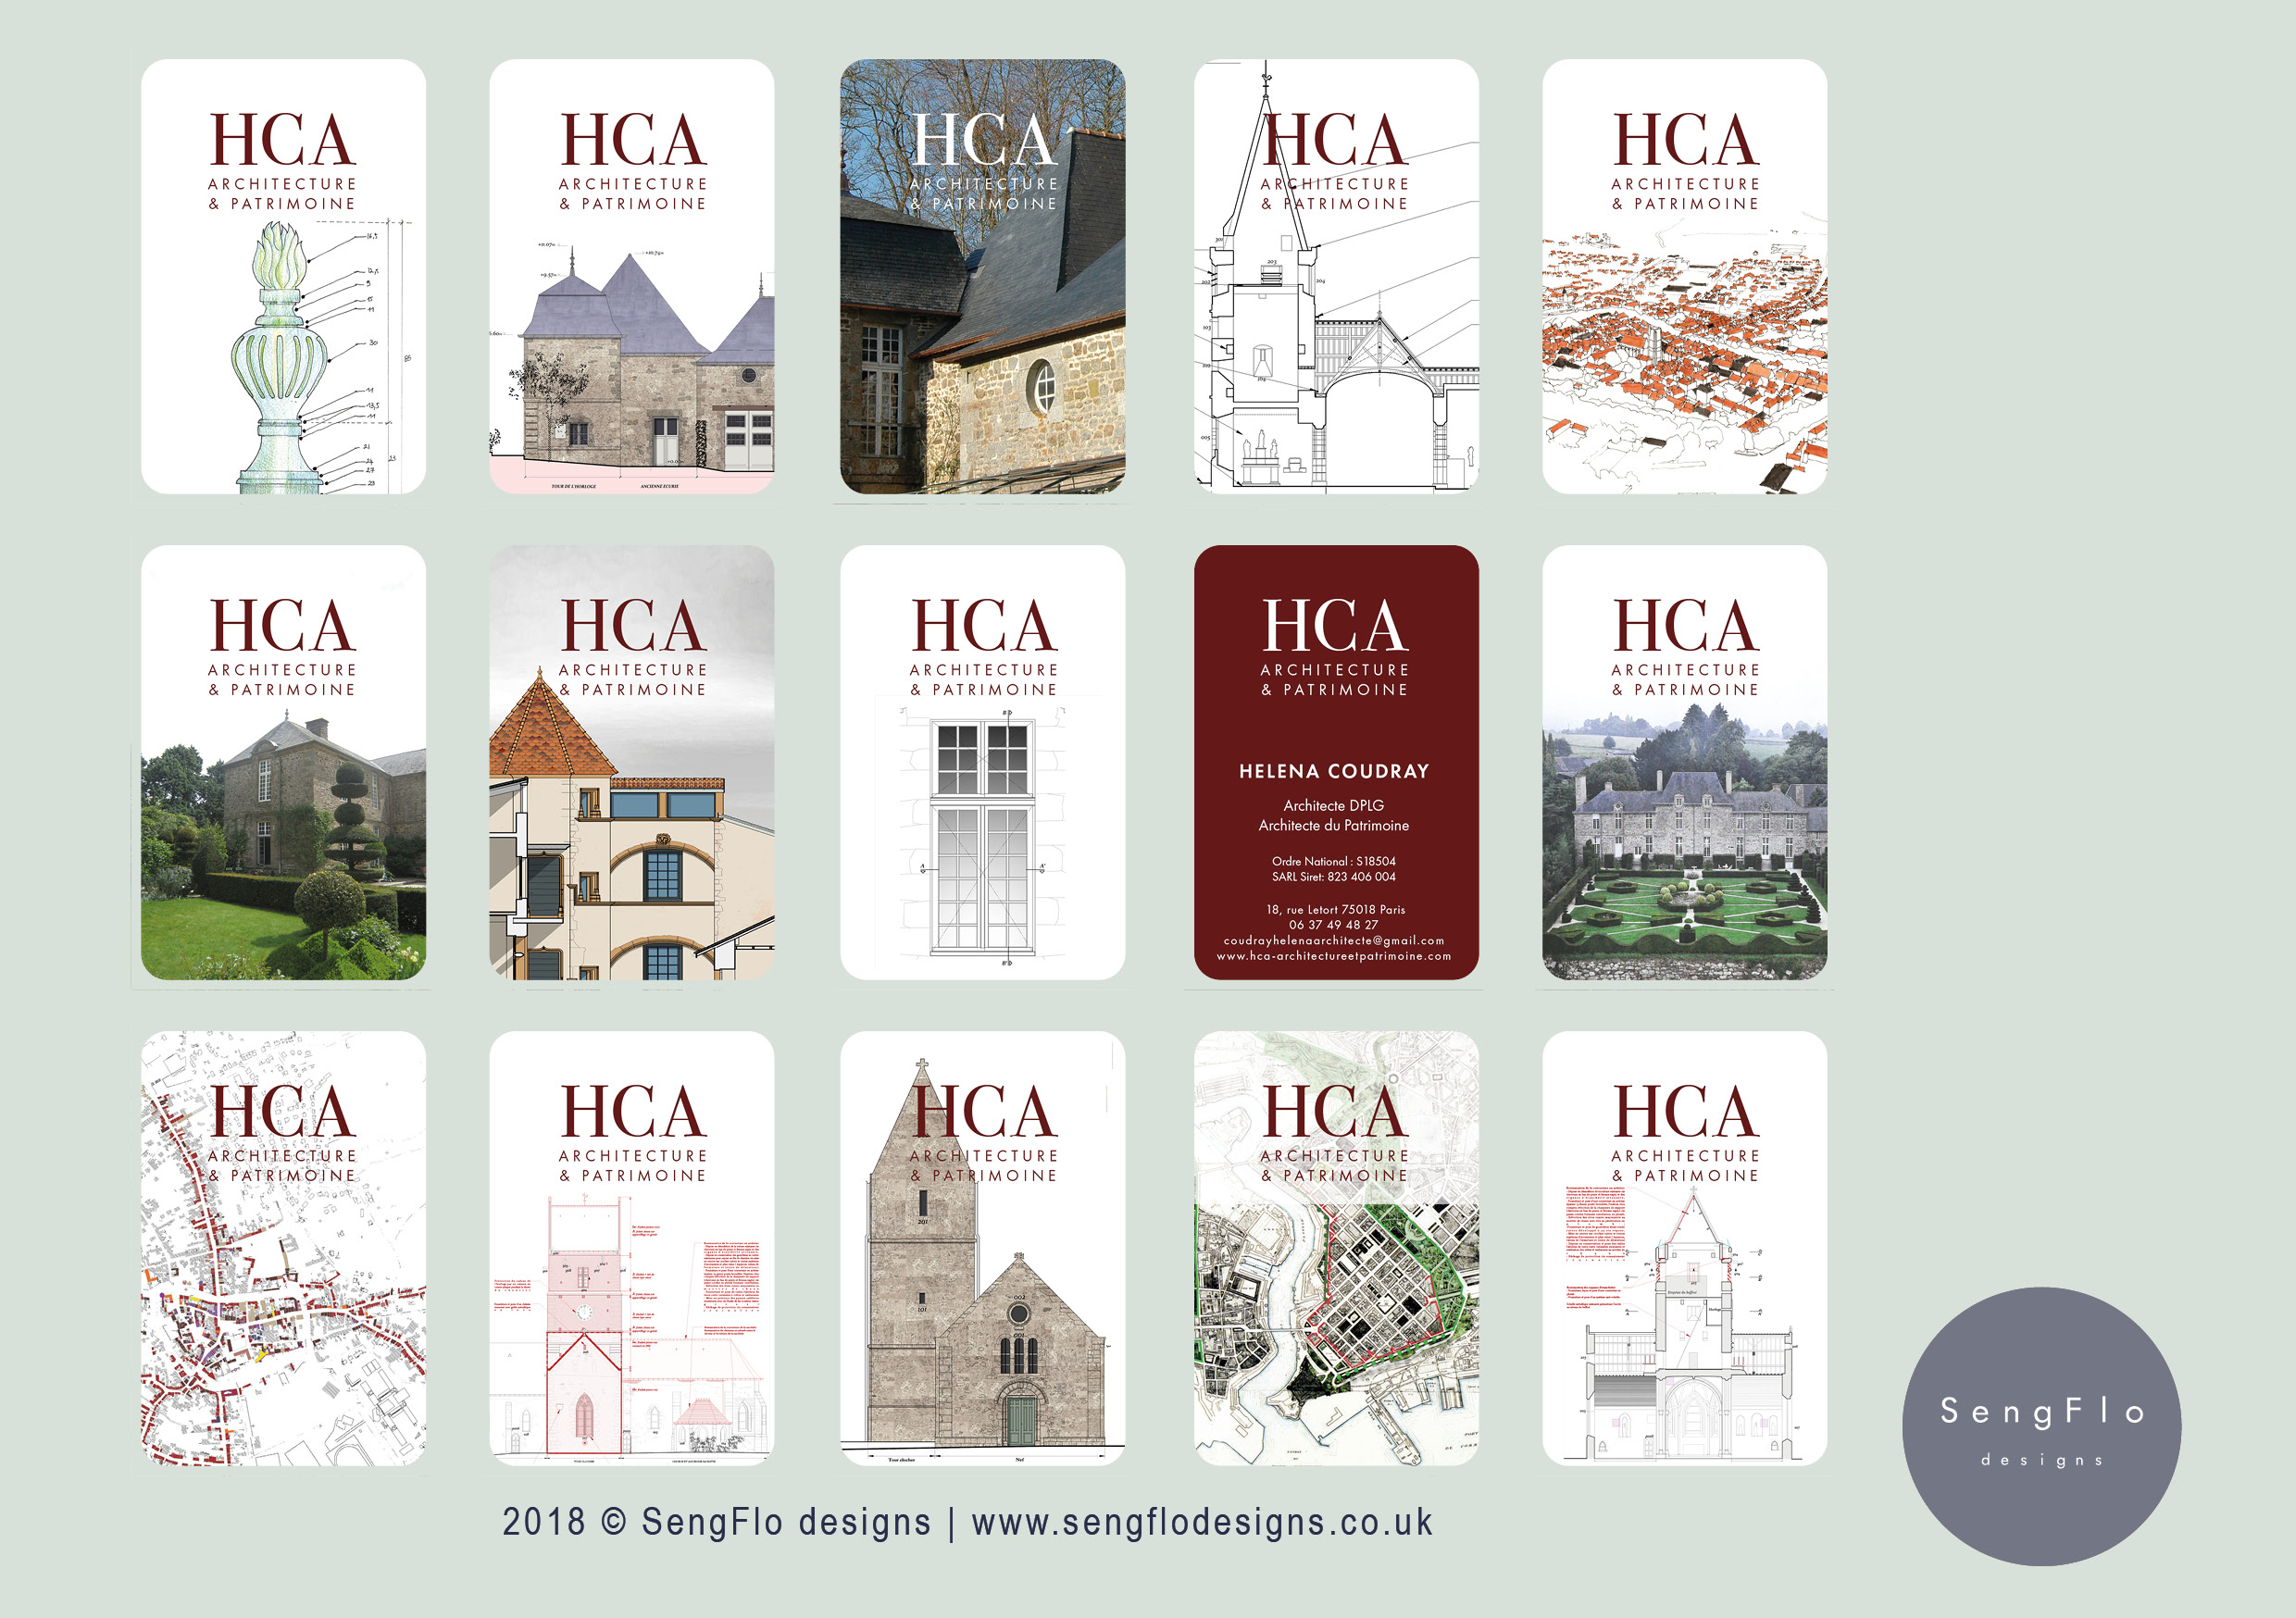 HCA_buscards for web_01